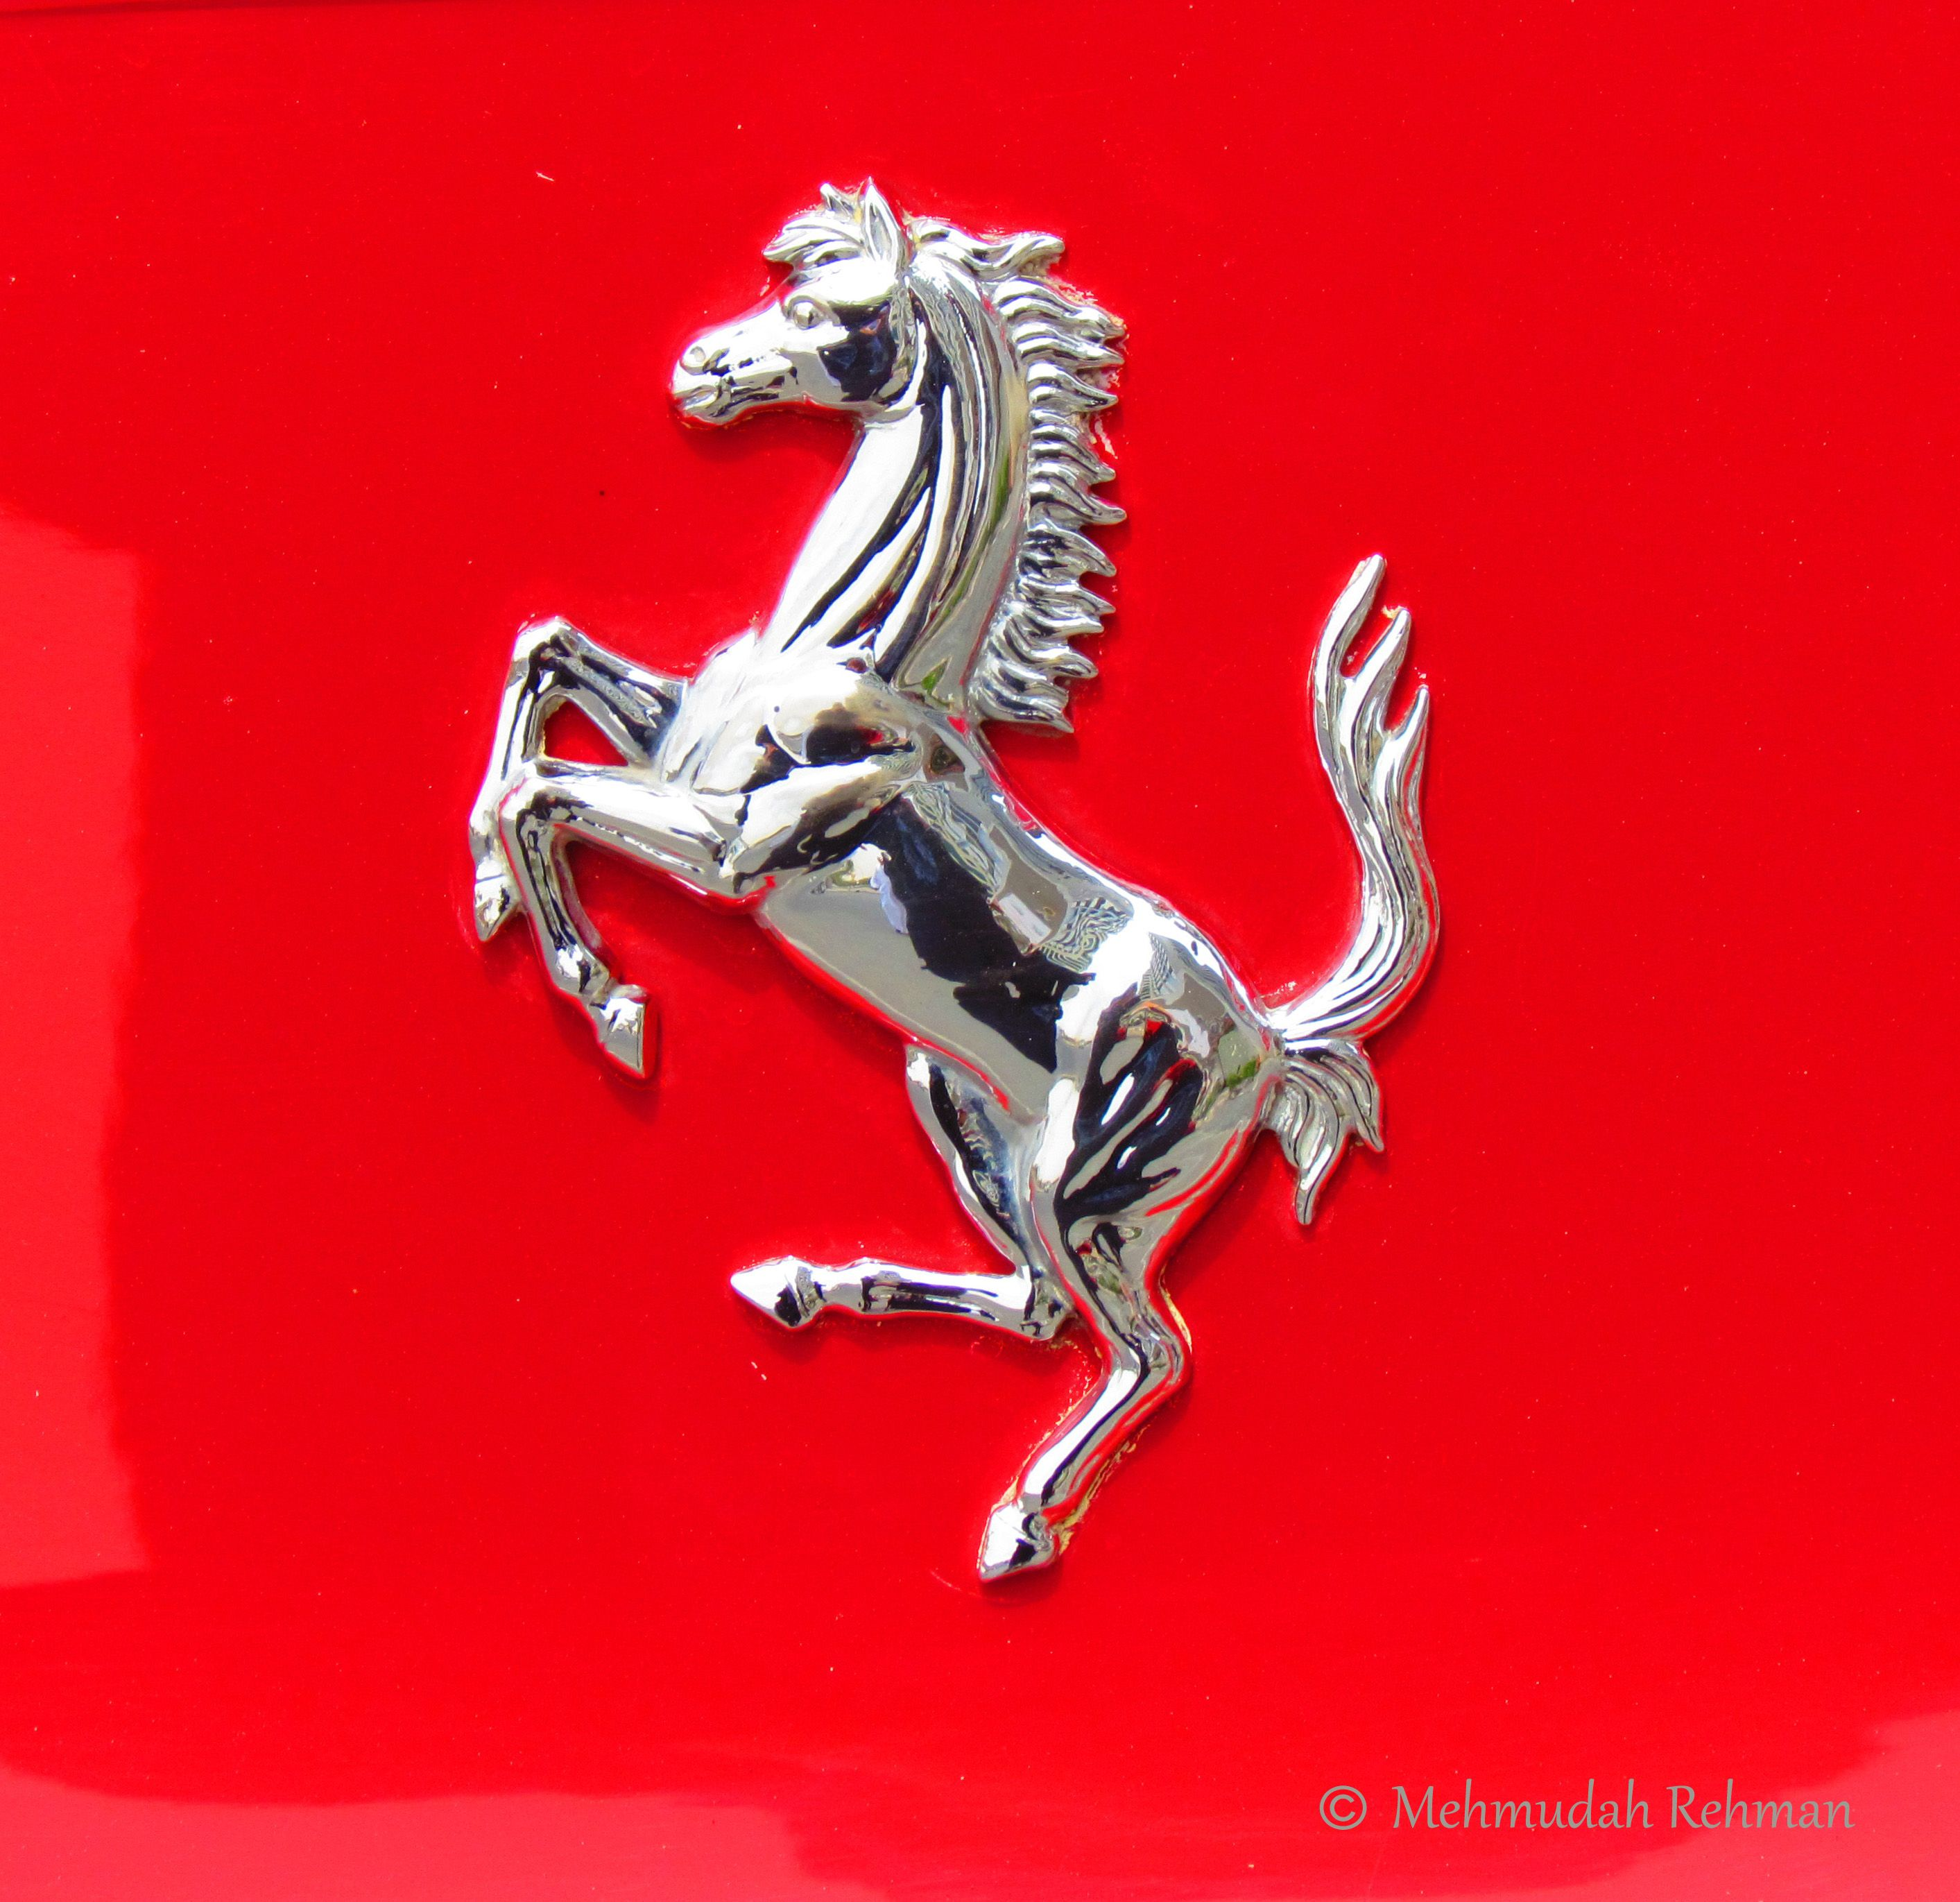 ferrari logo, images - Google Search | Cars and Bikes ...